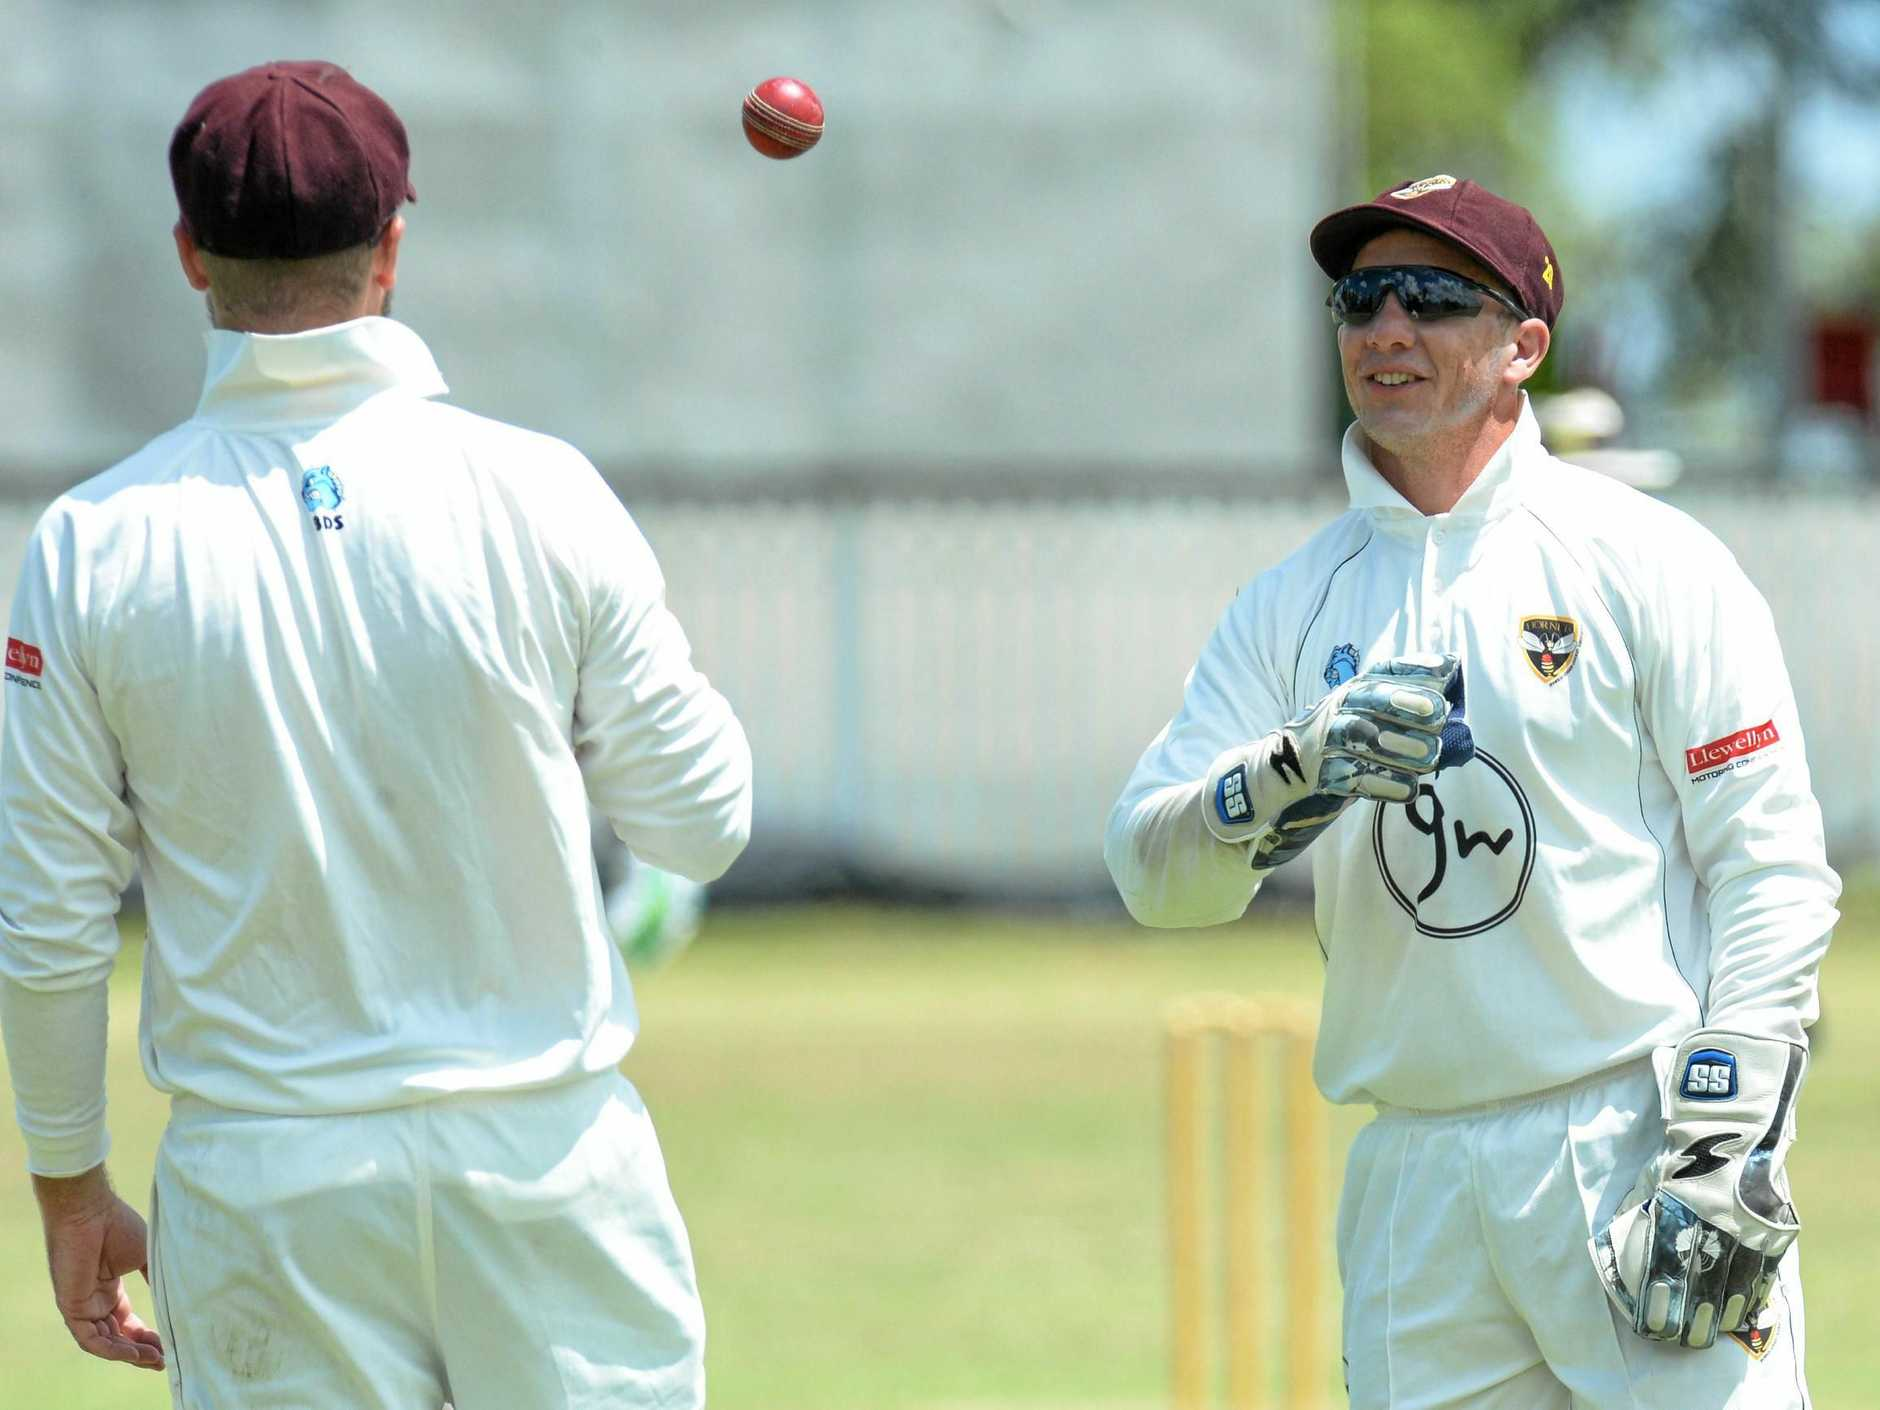 The Hornets left some chances on the field in their one-day clash with Wests at Baxter Oval.